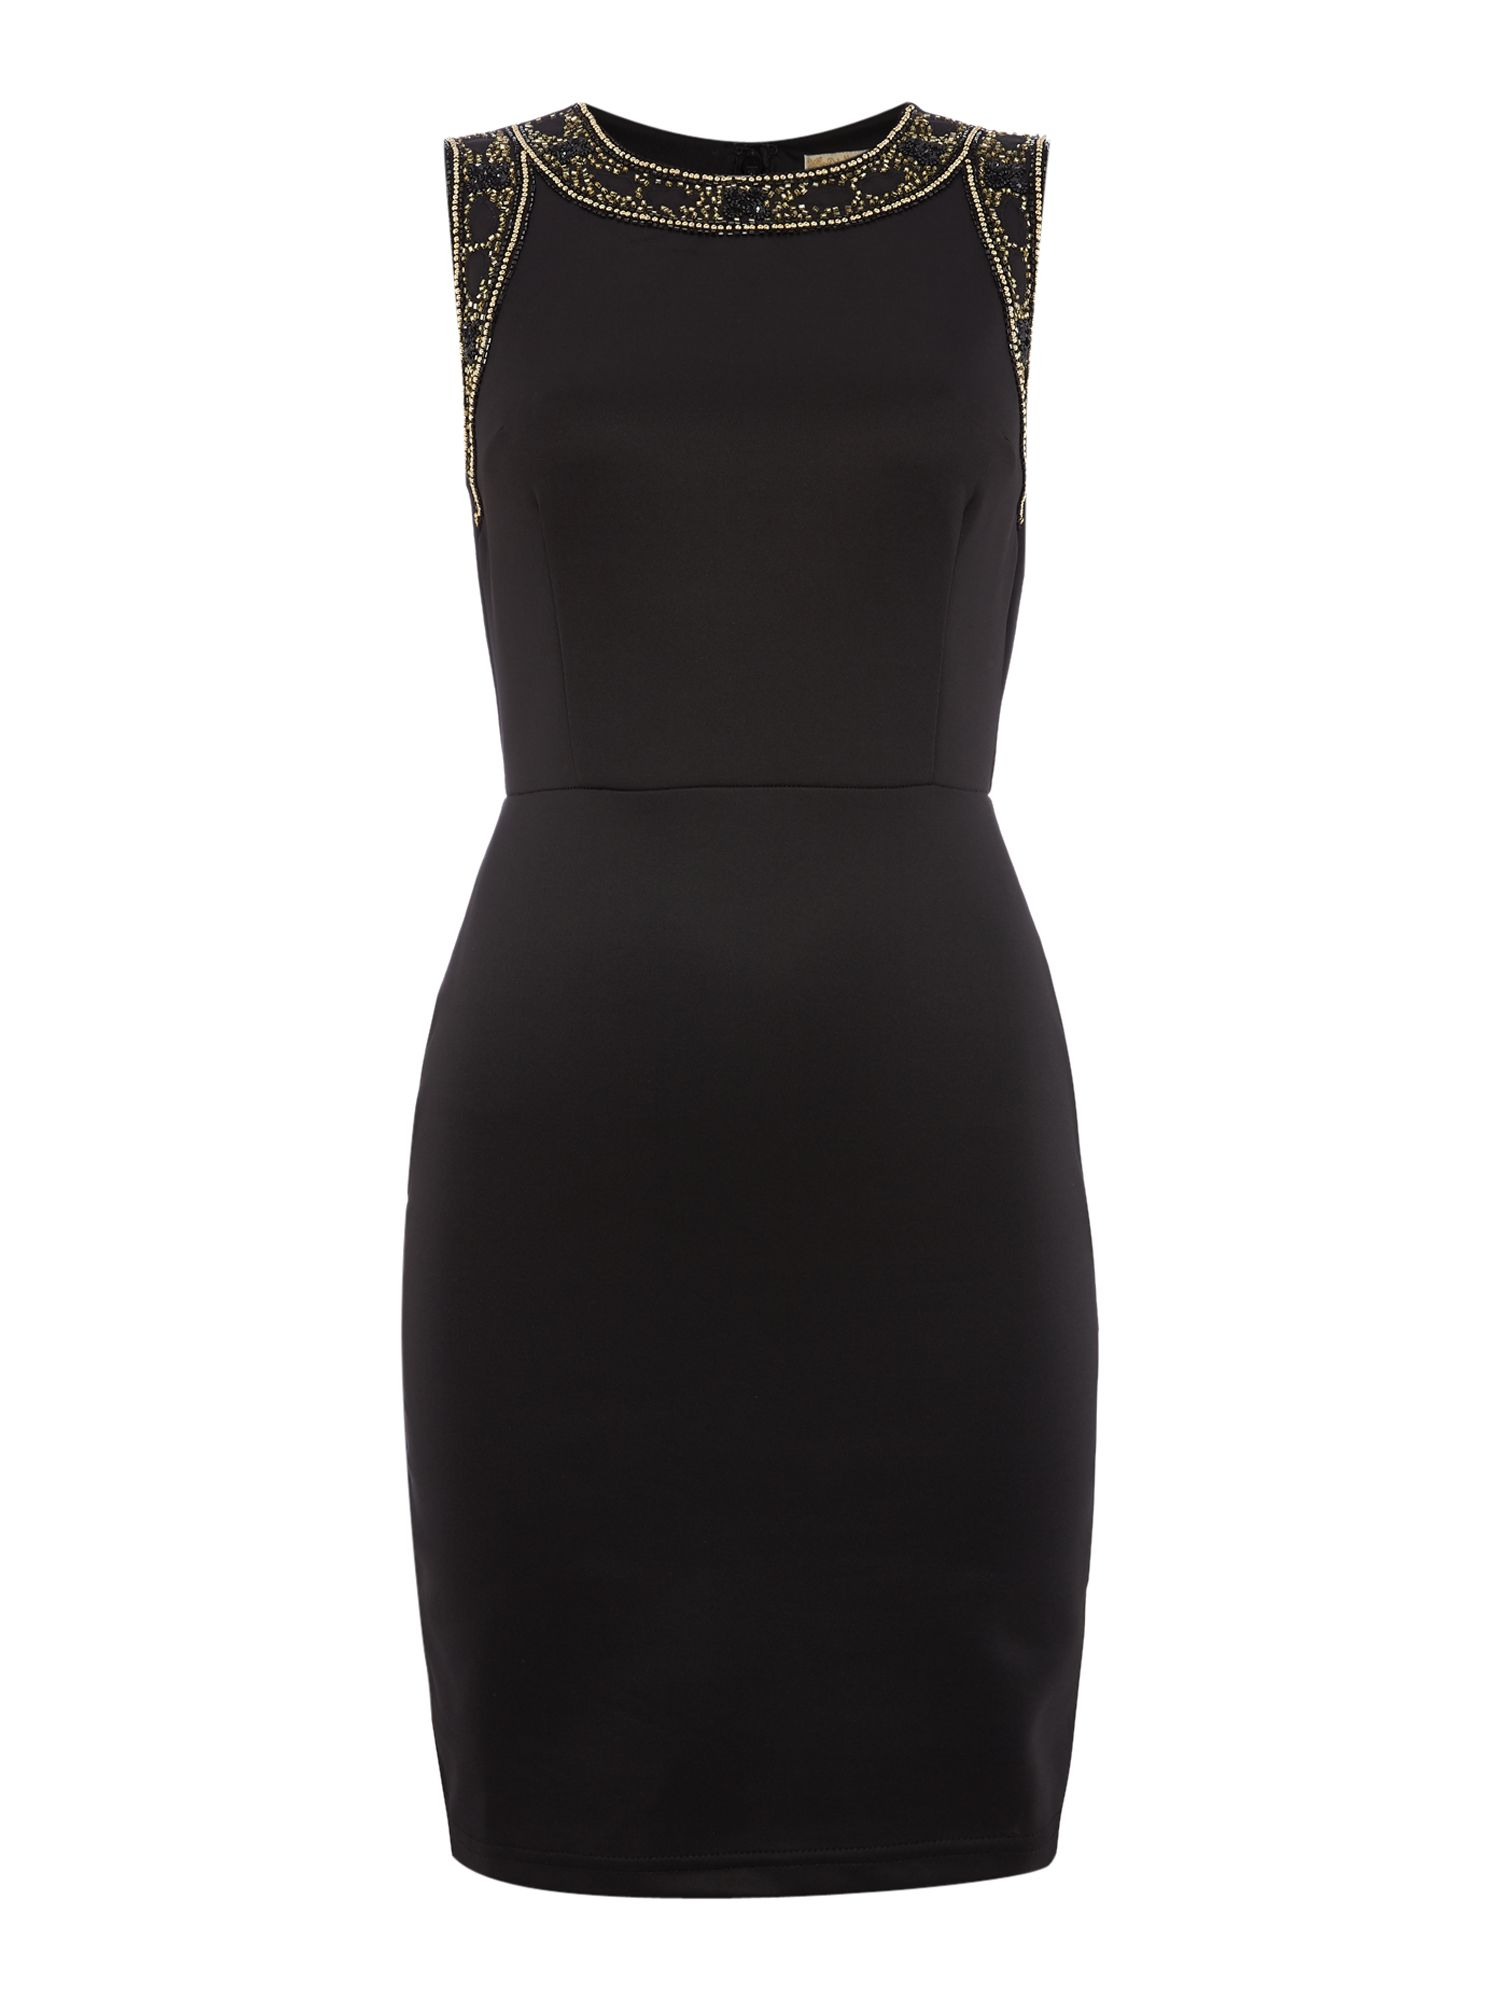 Lace and Beads Lace and Beads Short sleeve cut out scuba bodycon dress, Black